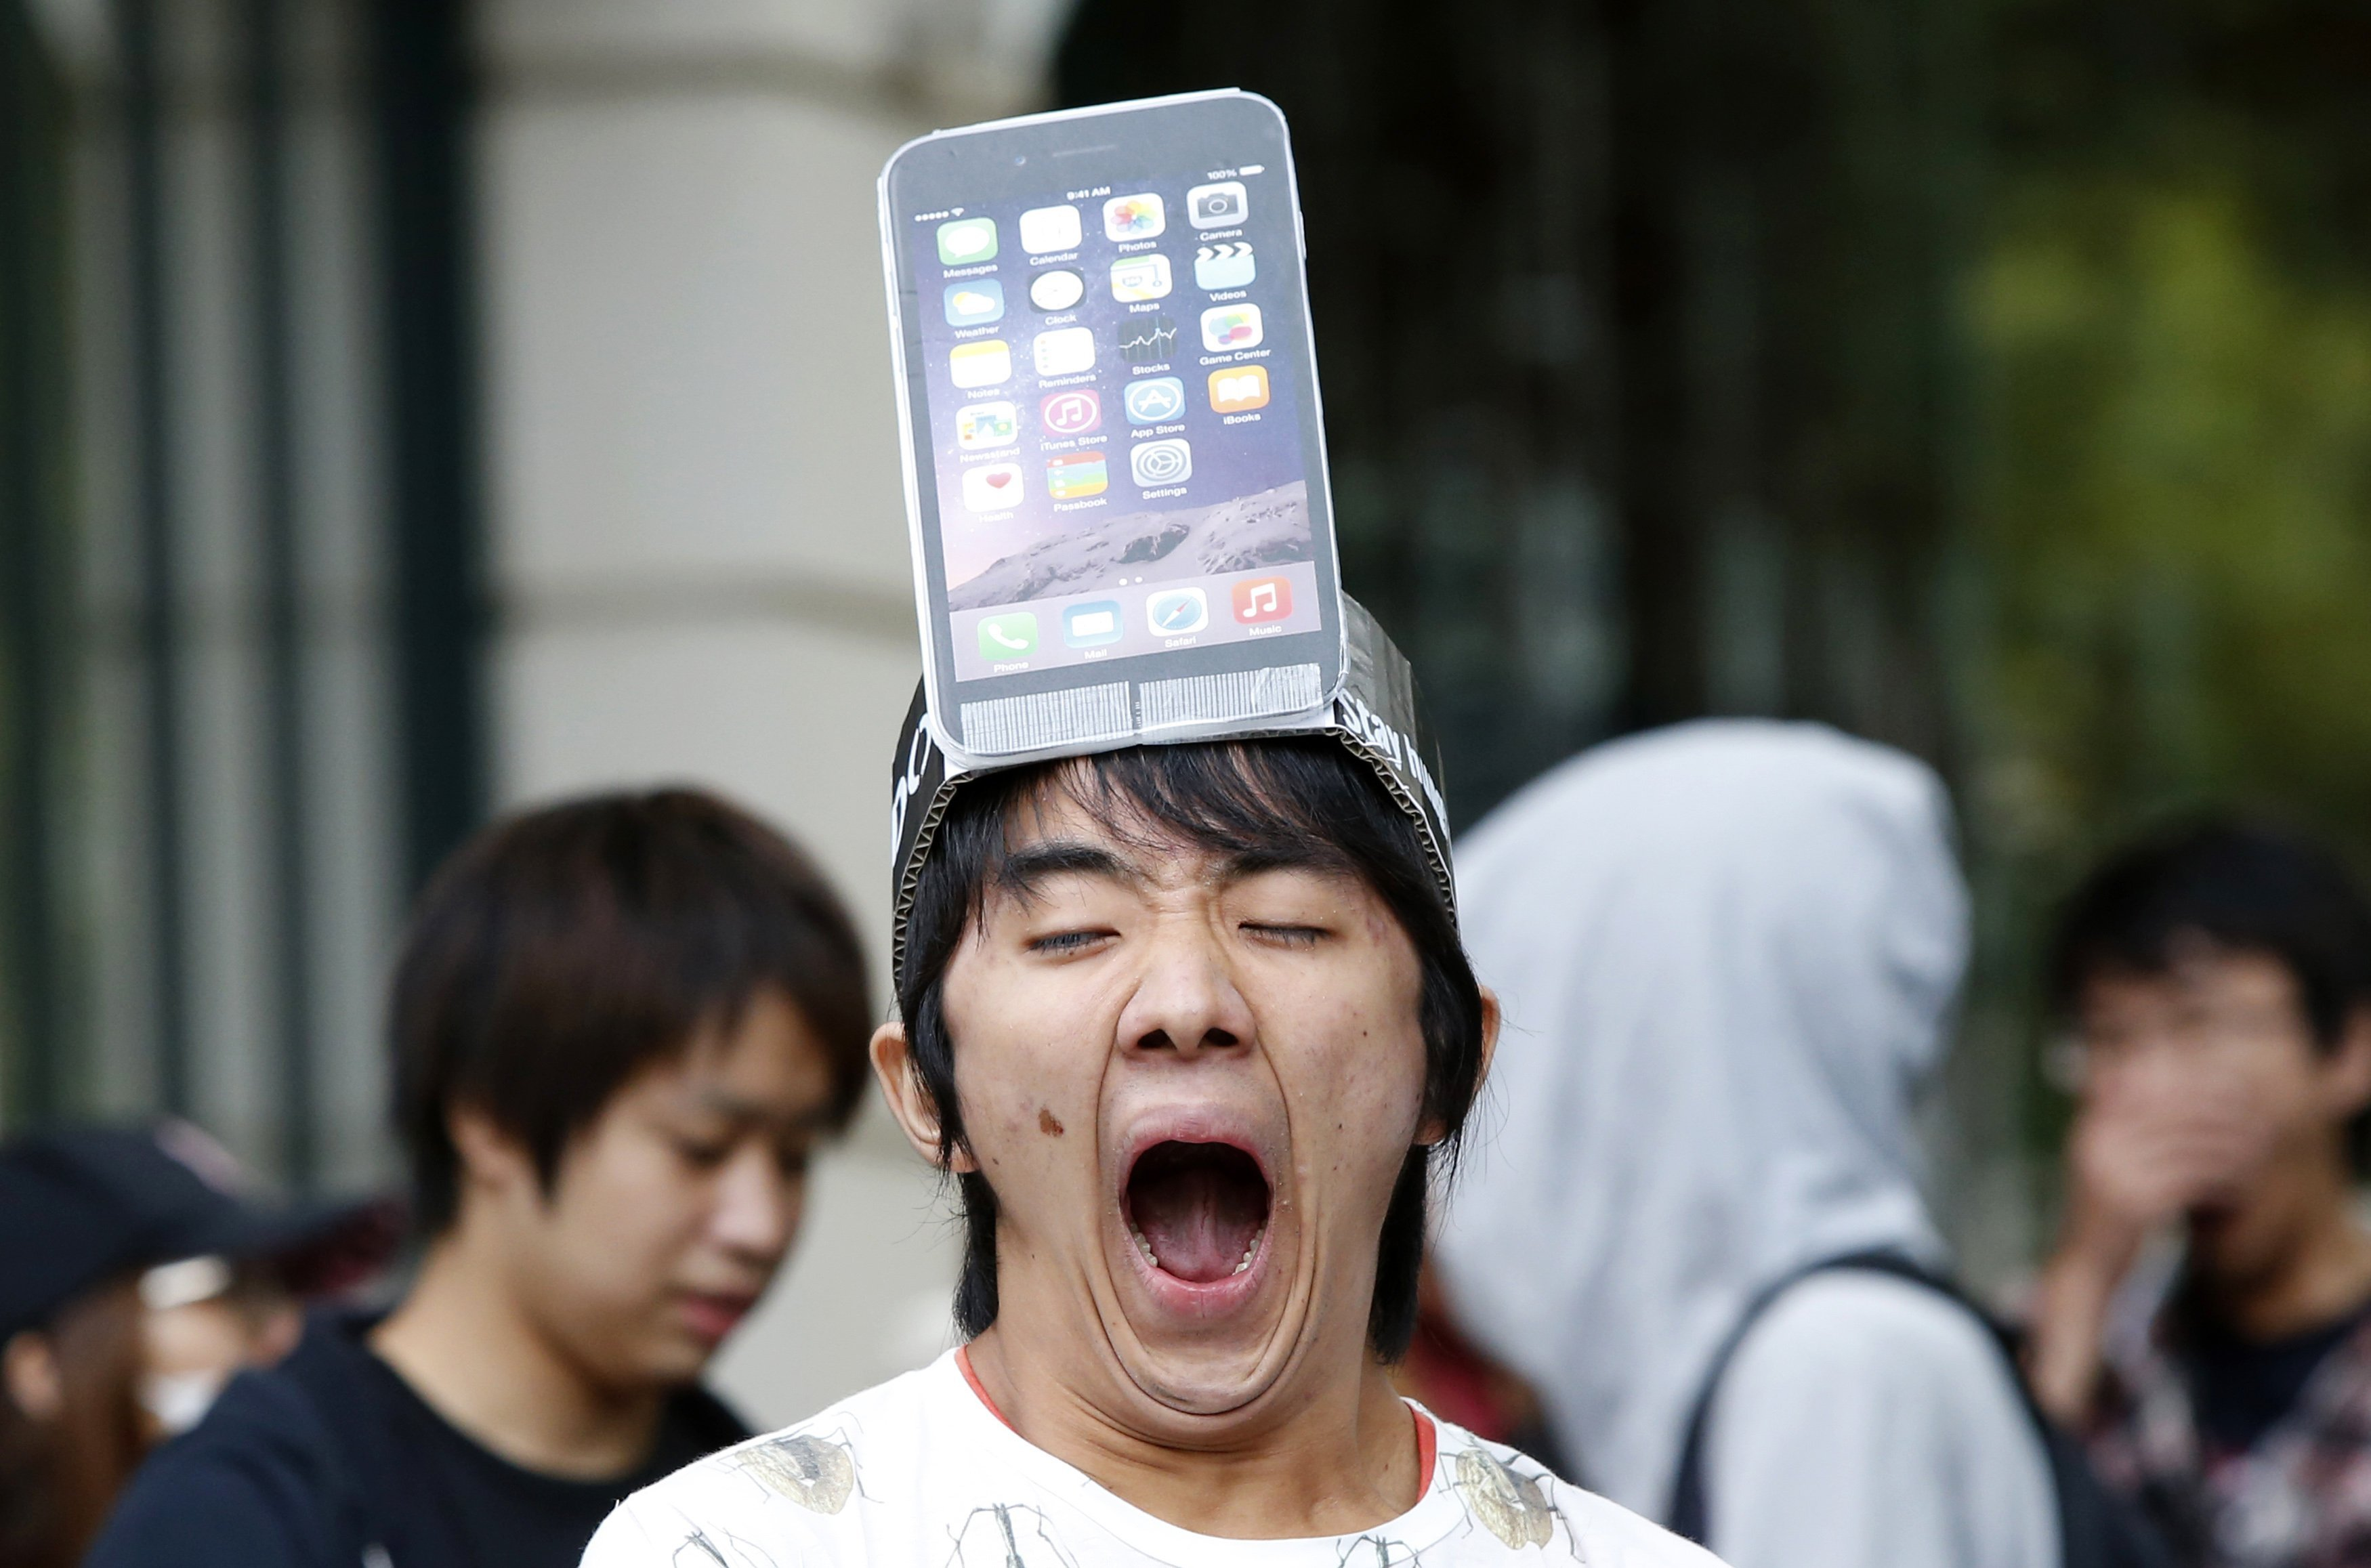 A man wearing a replica of an iPhone 6 Plus model on his head yawns while waiting in front of an Apple Store in Tokyo on Sept. 19, 2014.